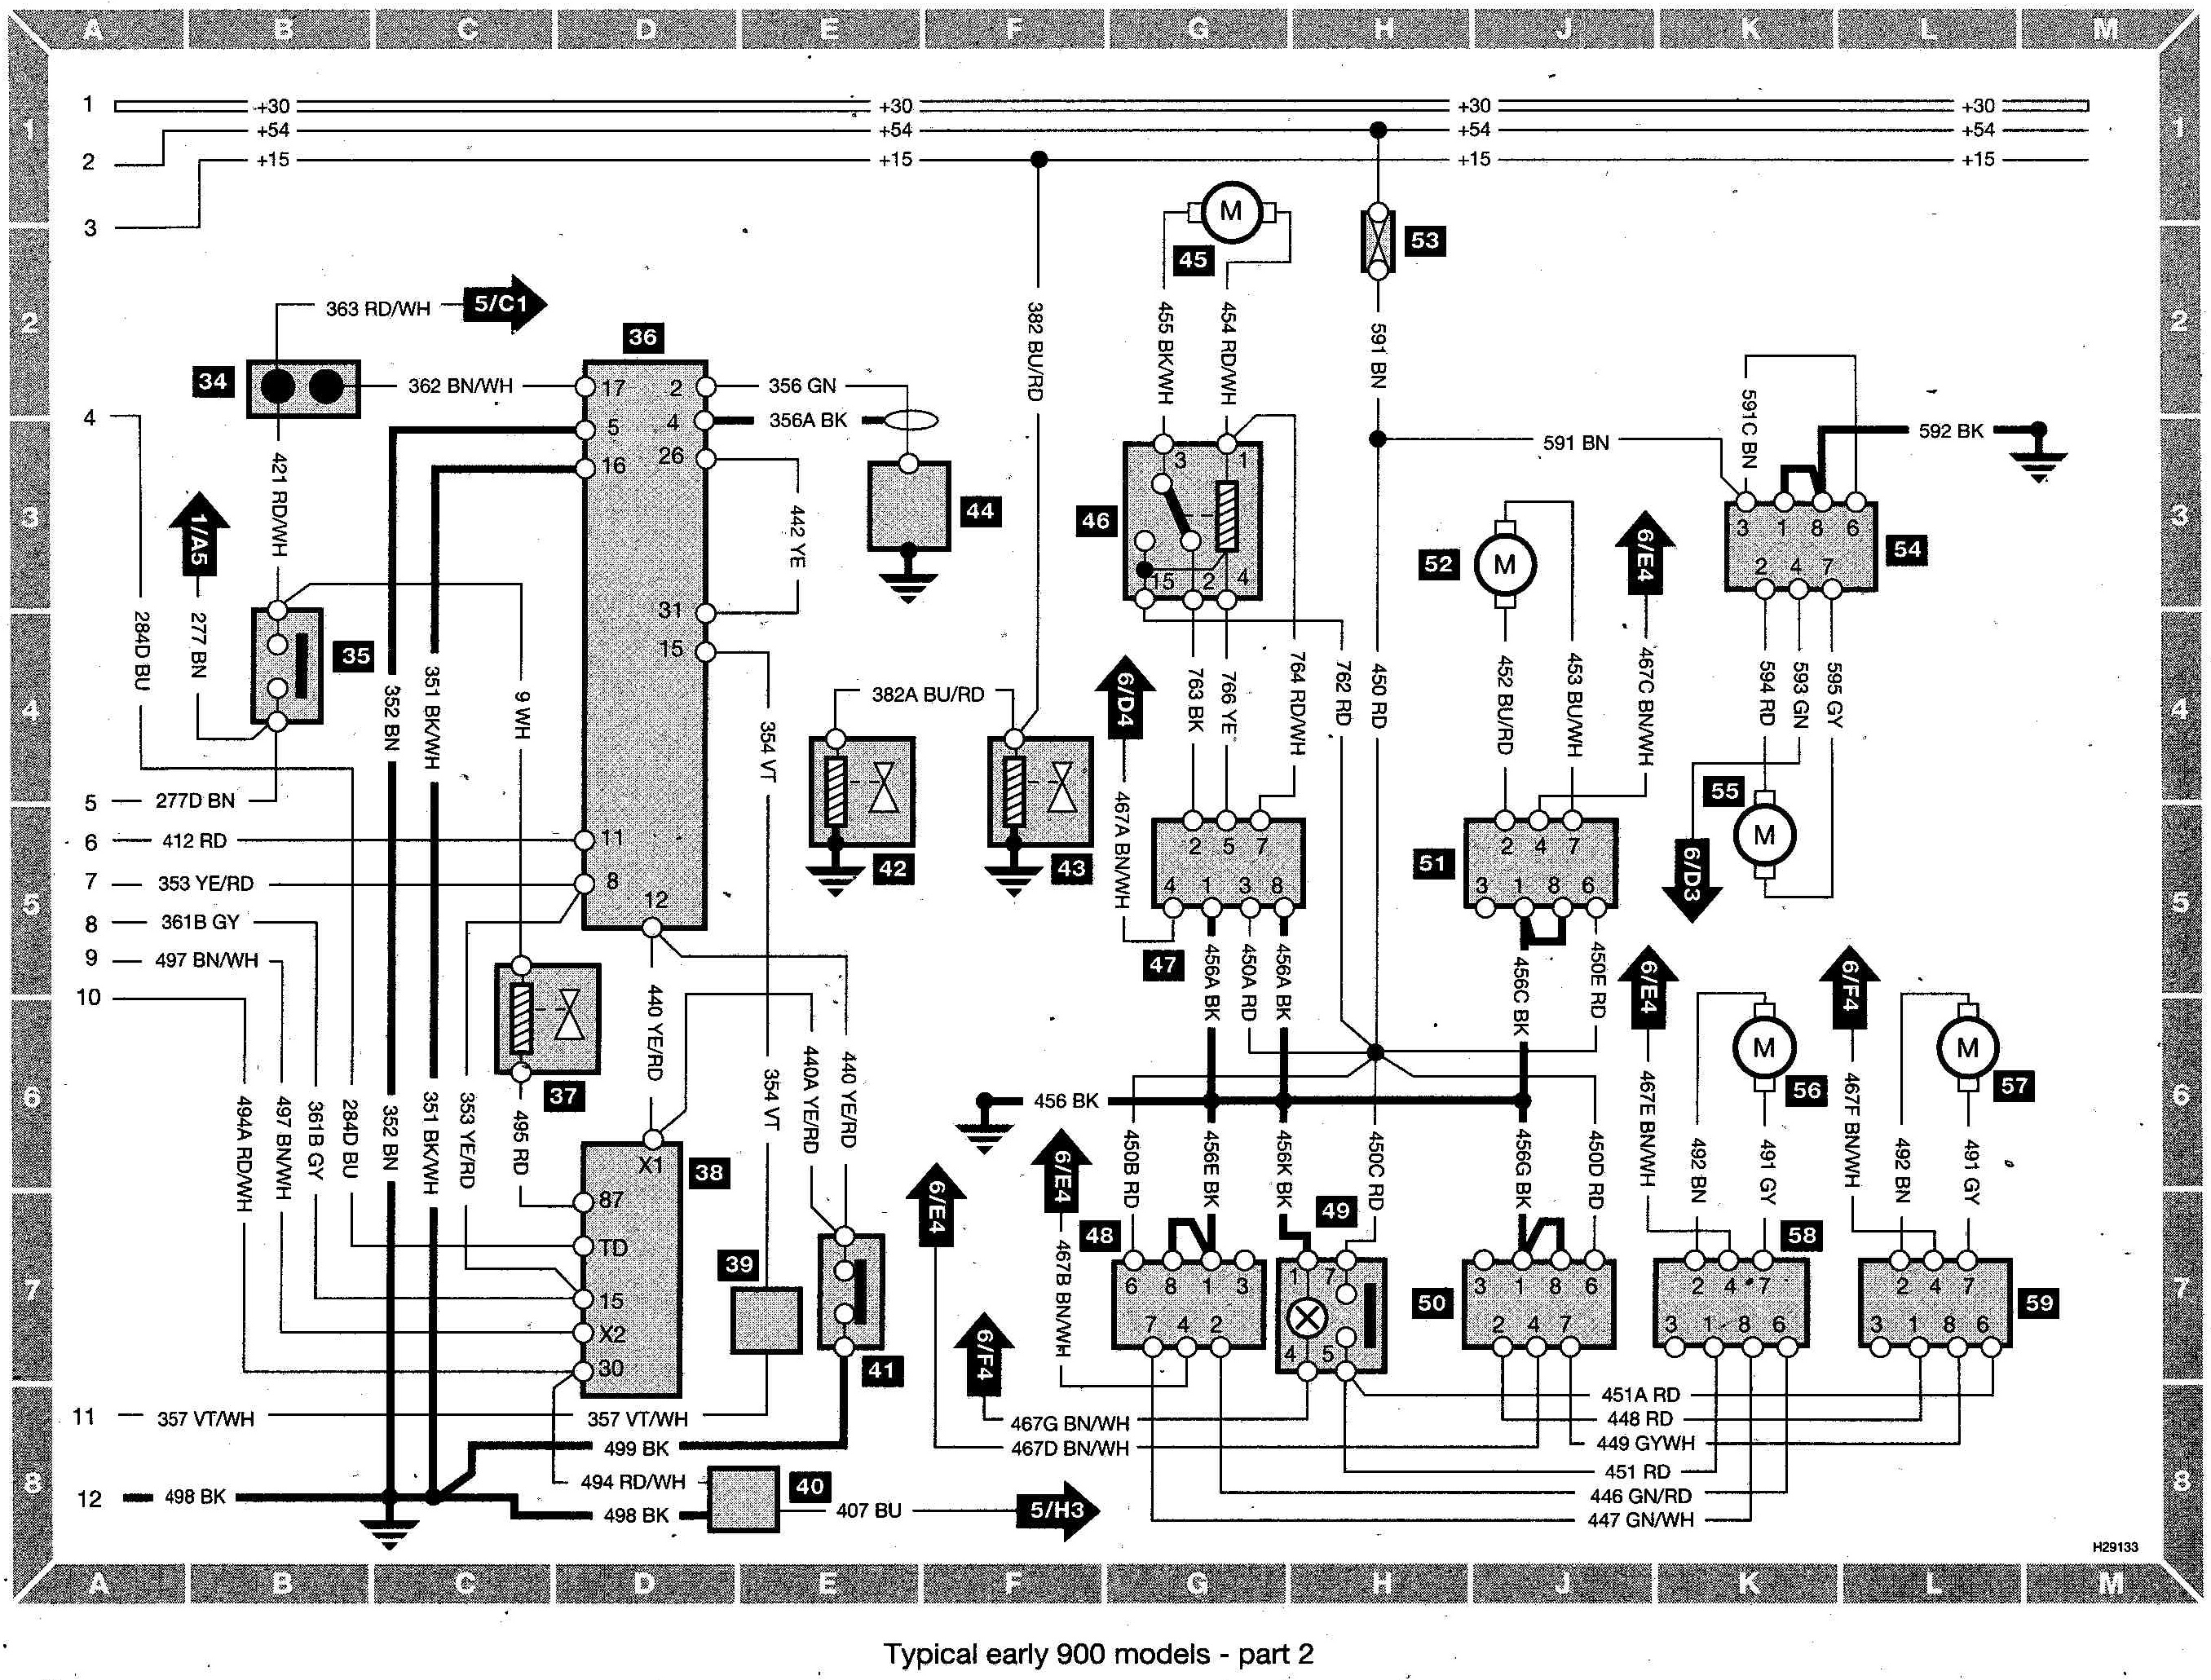 Saab 900 Wiring diagram (early models) part 2?resized665%2C505 2005 saab radio wiring diagram efcaviation com saab 9-5 wiring harness at readyjetset.co